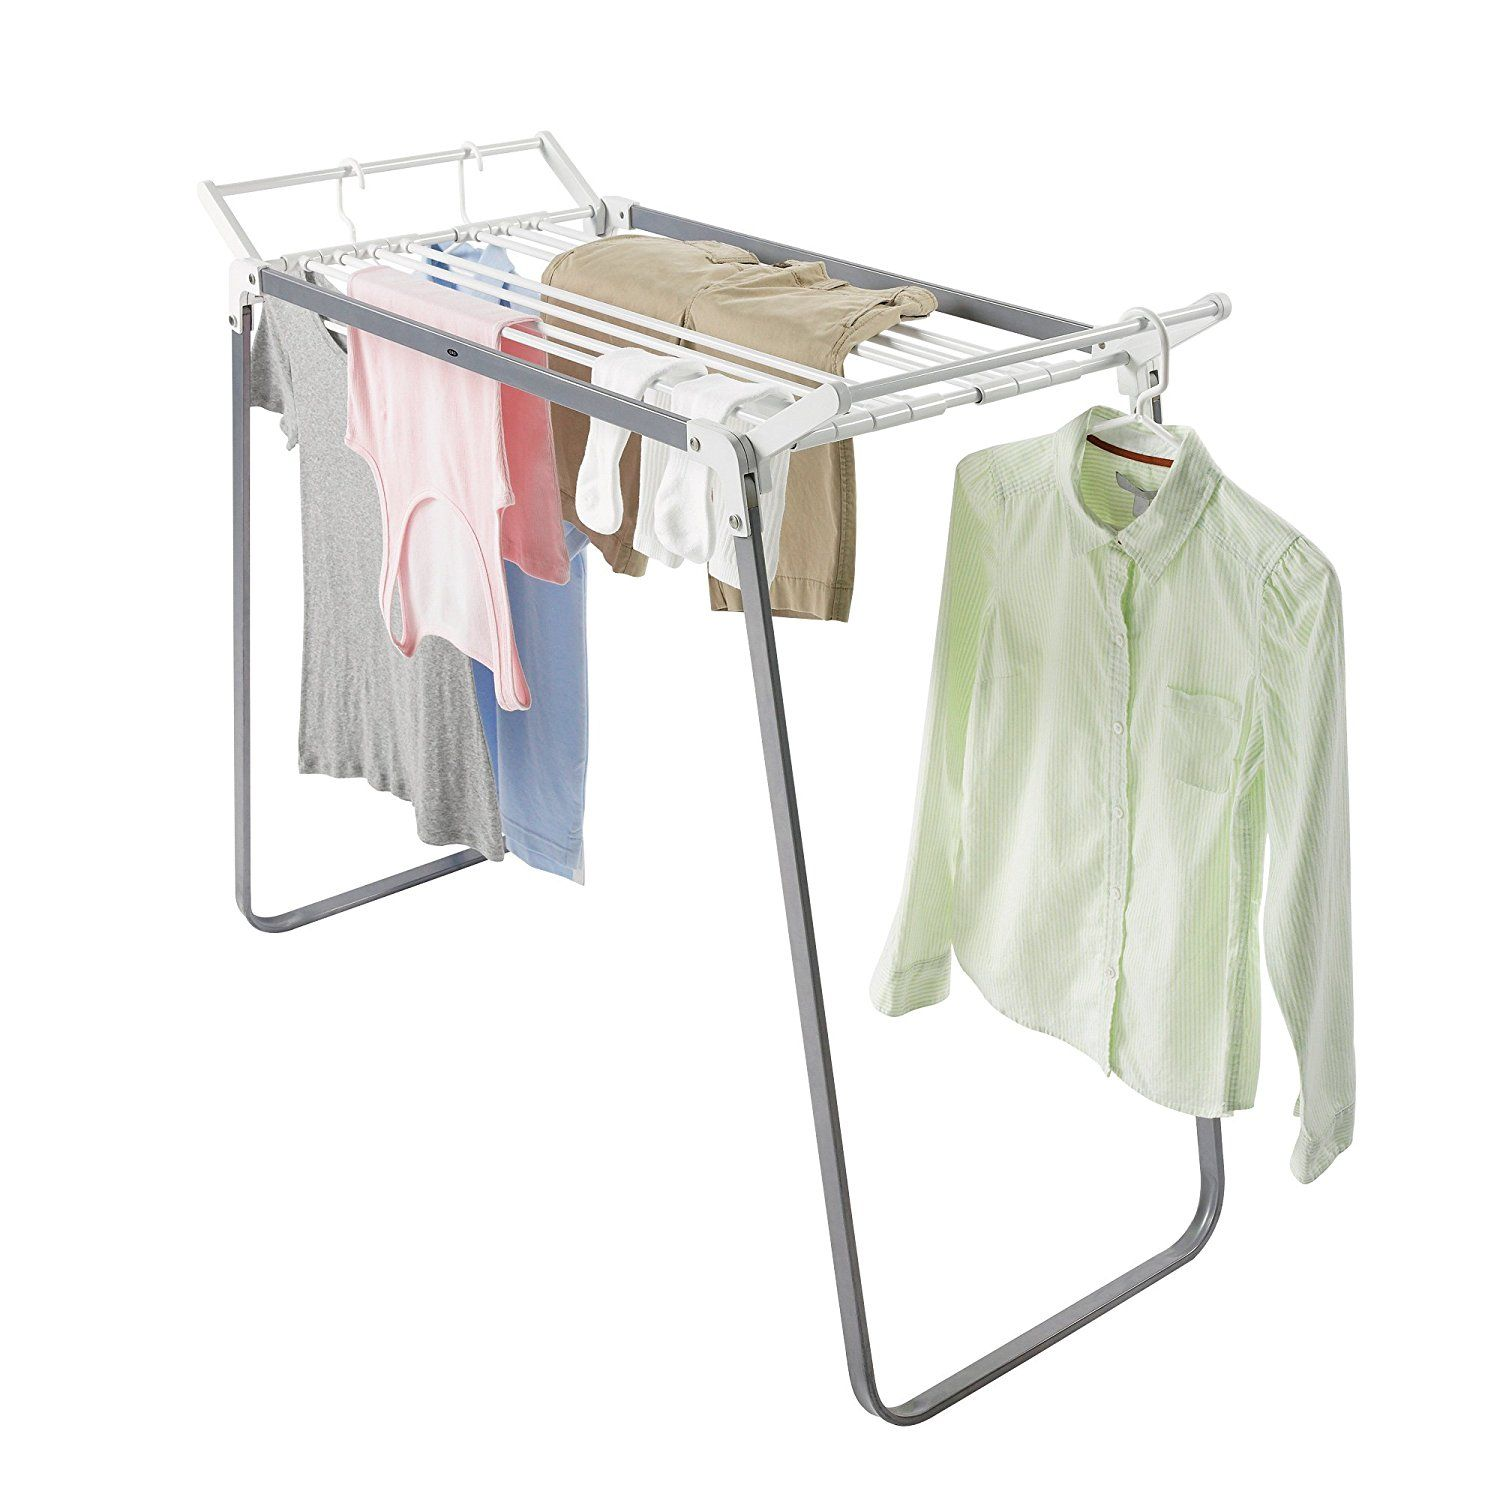 Stainless steel Small Folding Clothes Drying Rack For Dorm, Camping and RV.  Supports upto